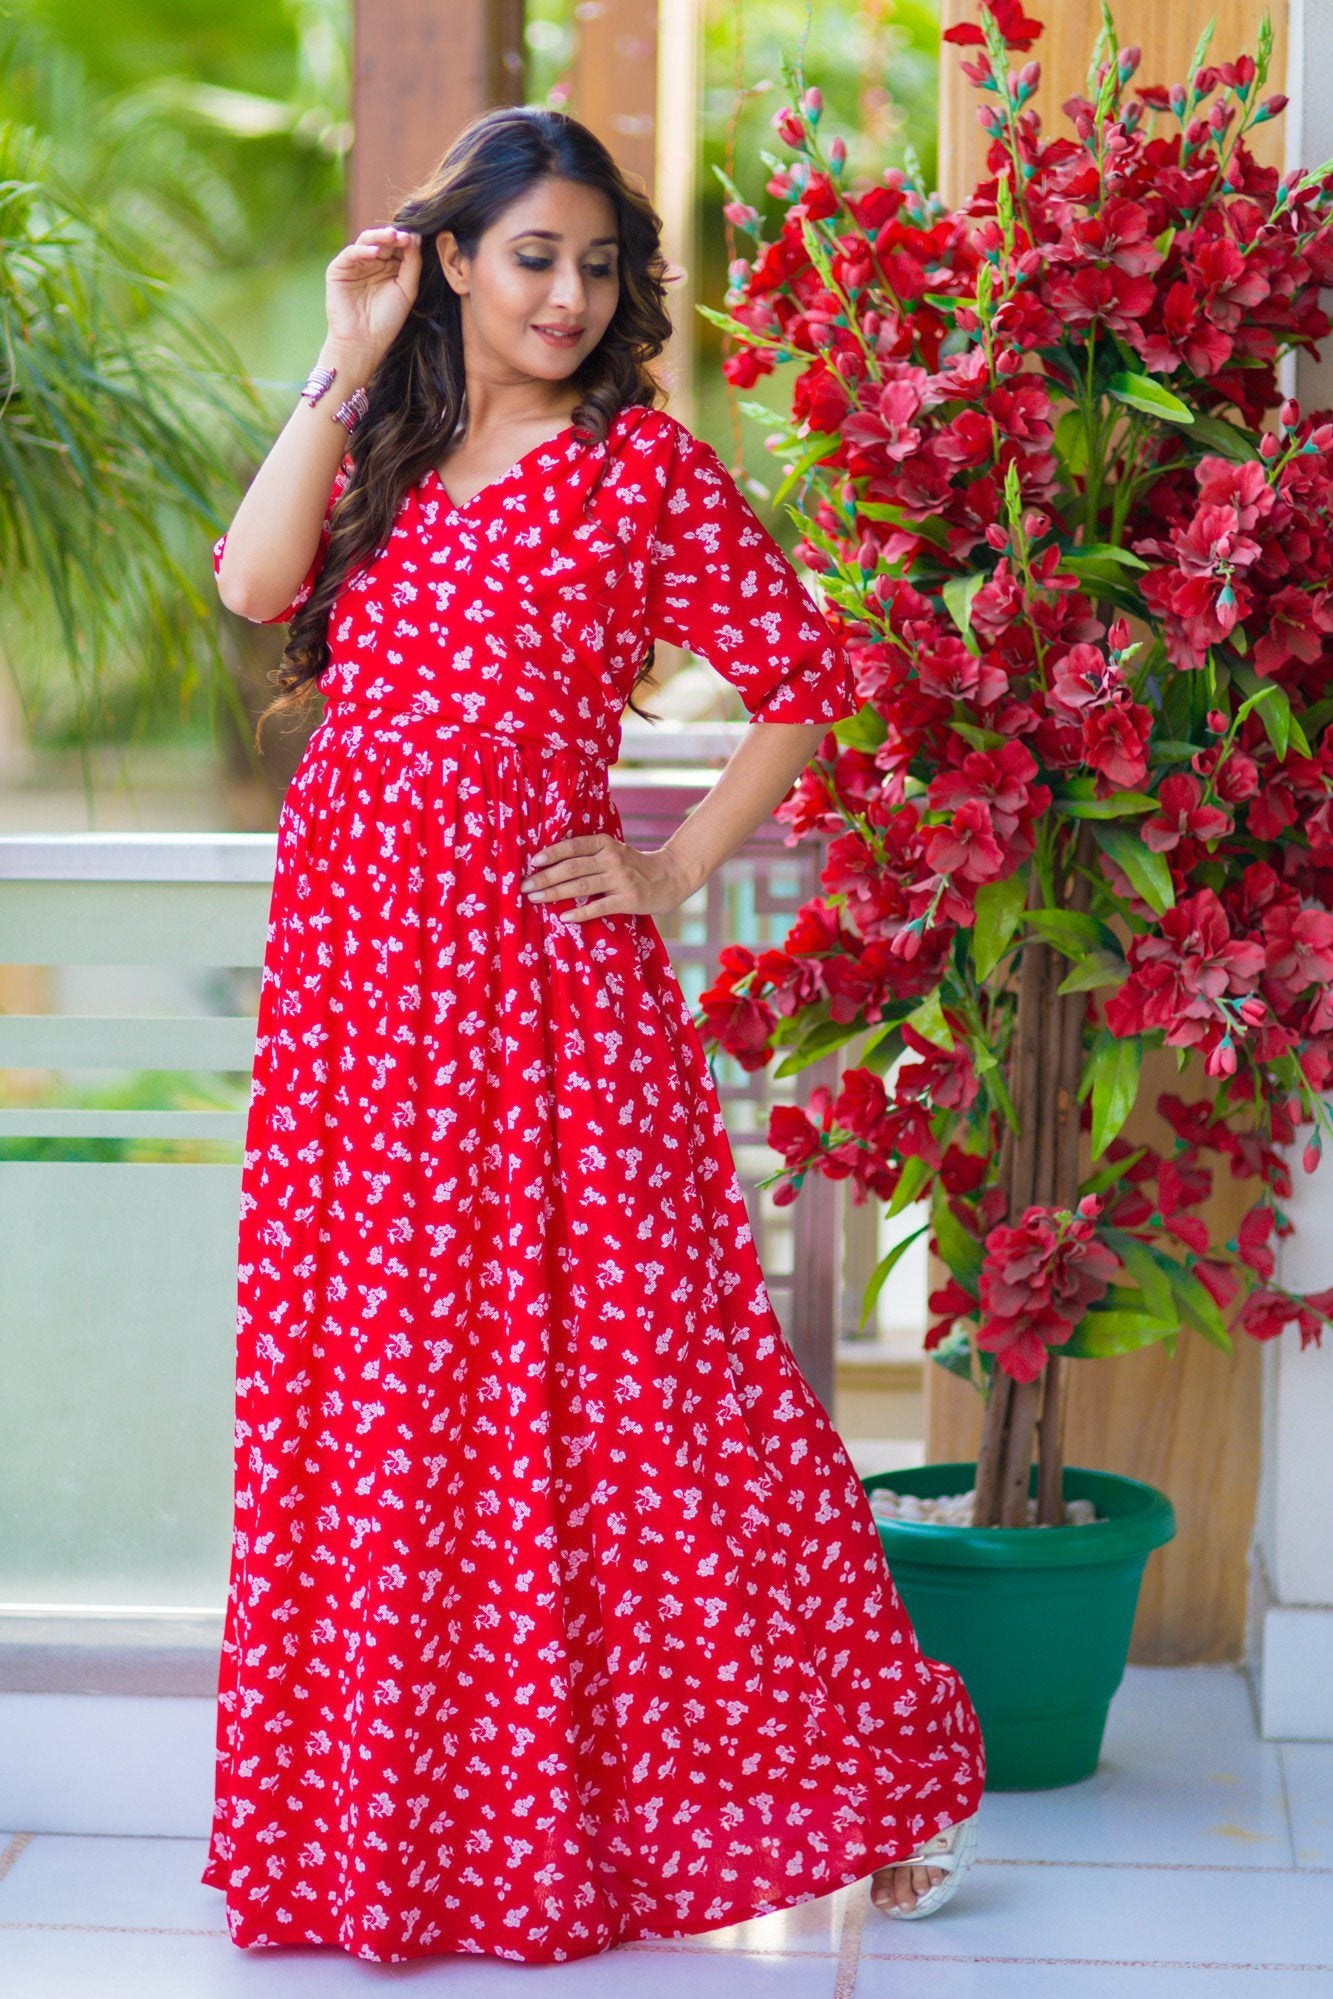 Chic Red Floral Maternity & Nursing Wrap Dress